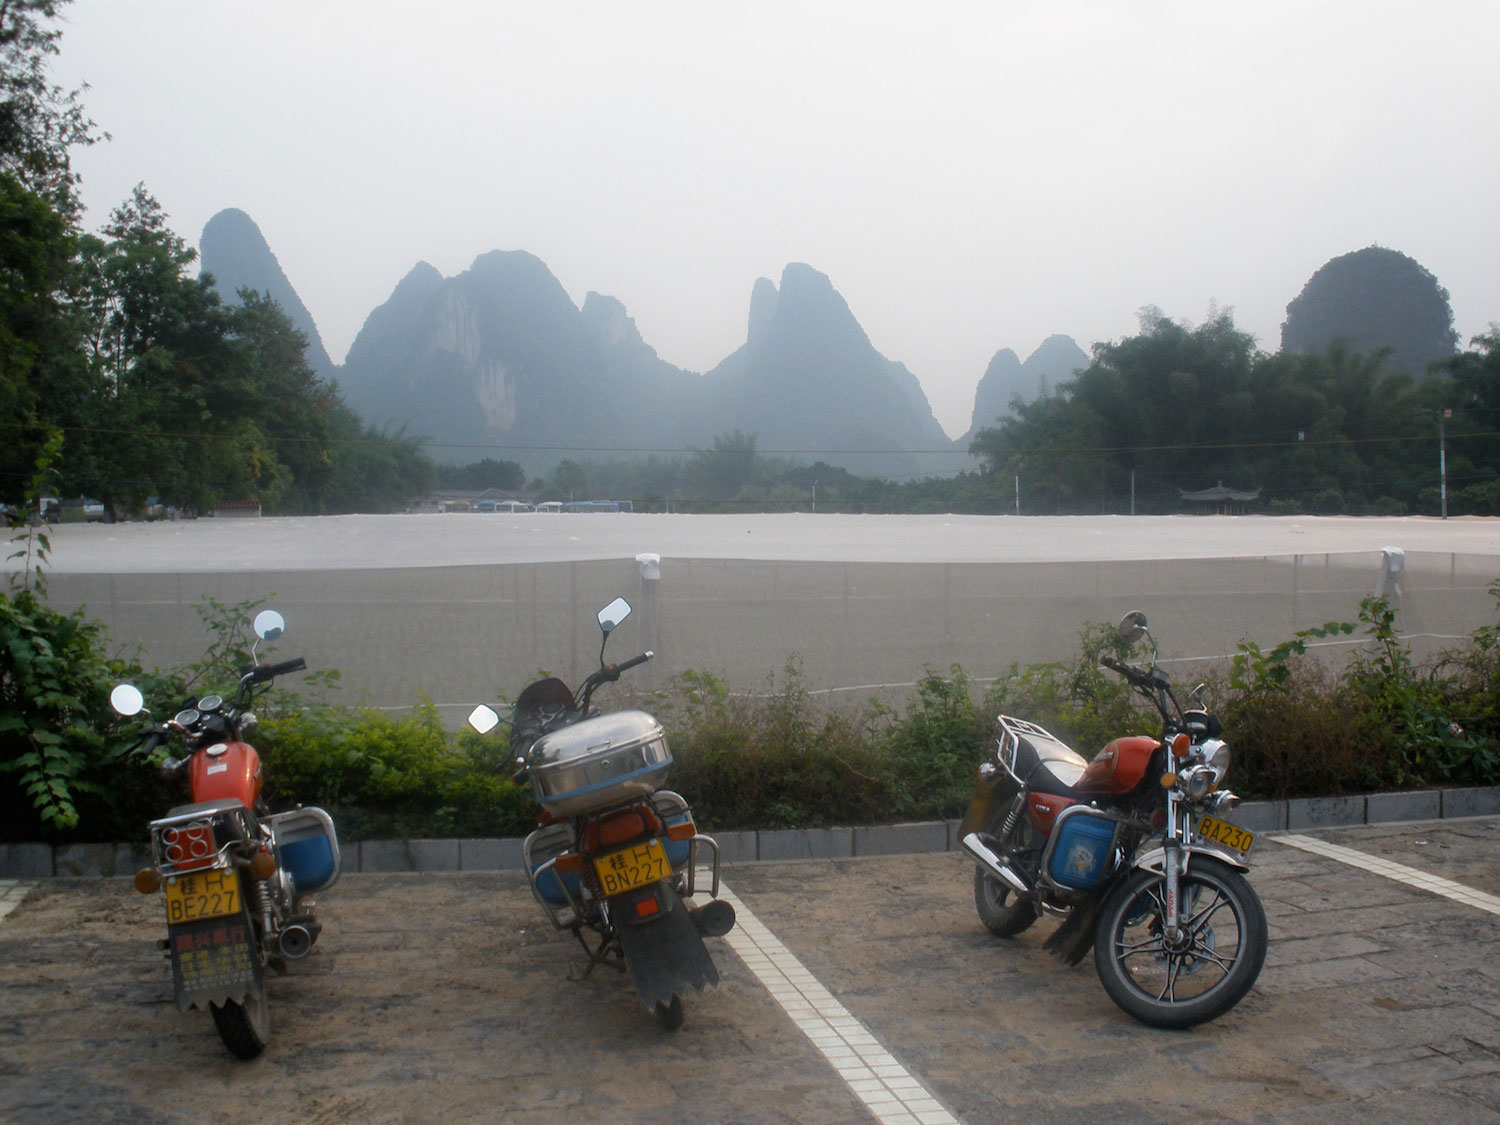 3 motorcycles